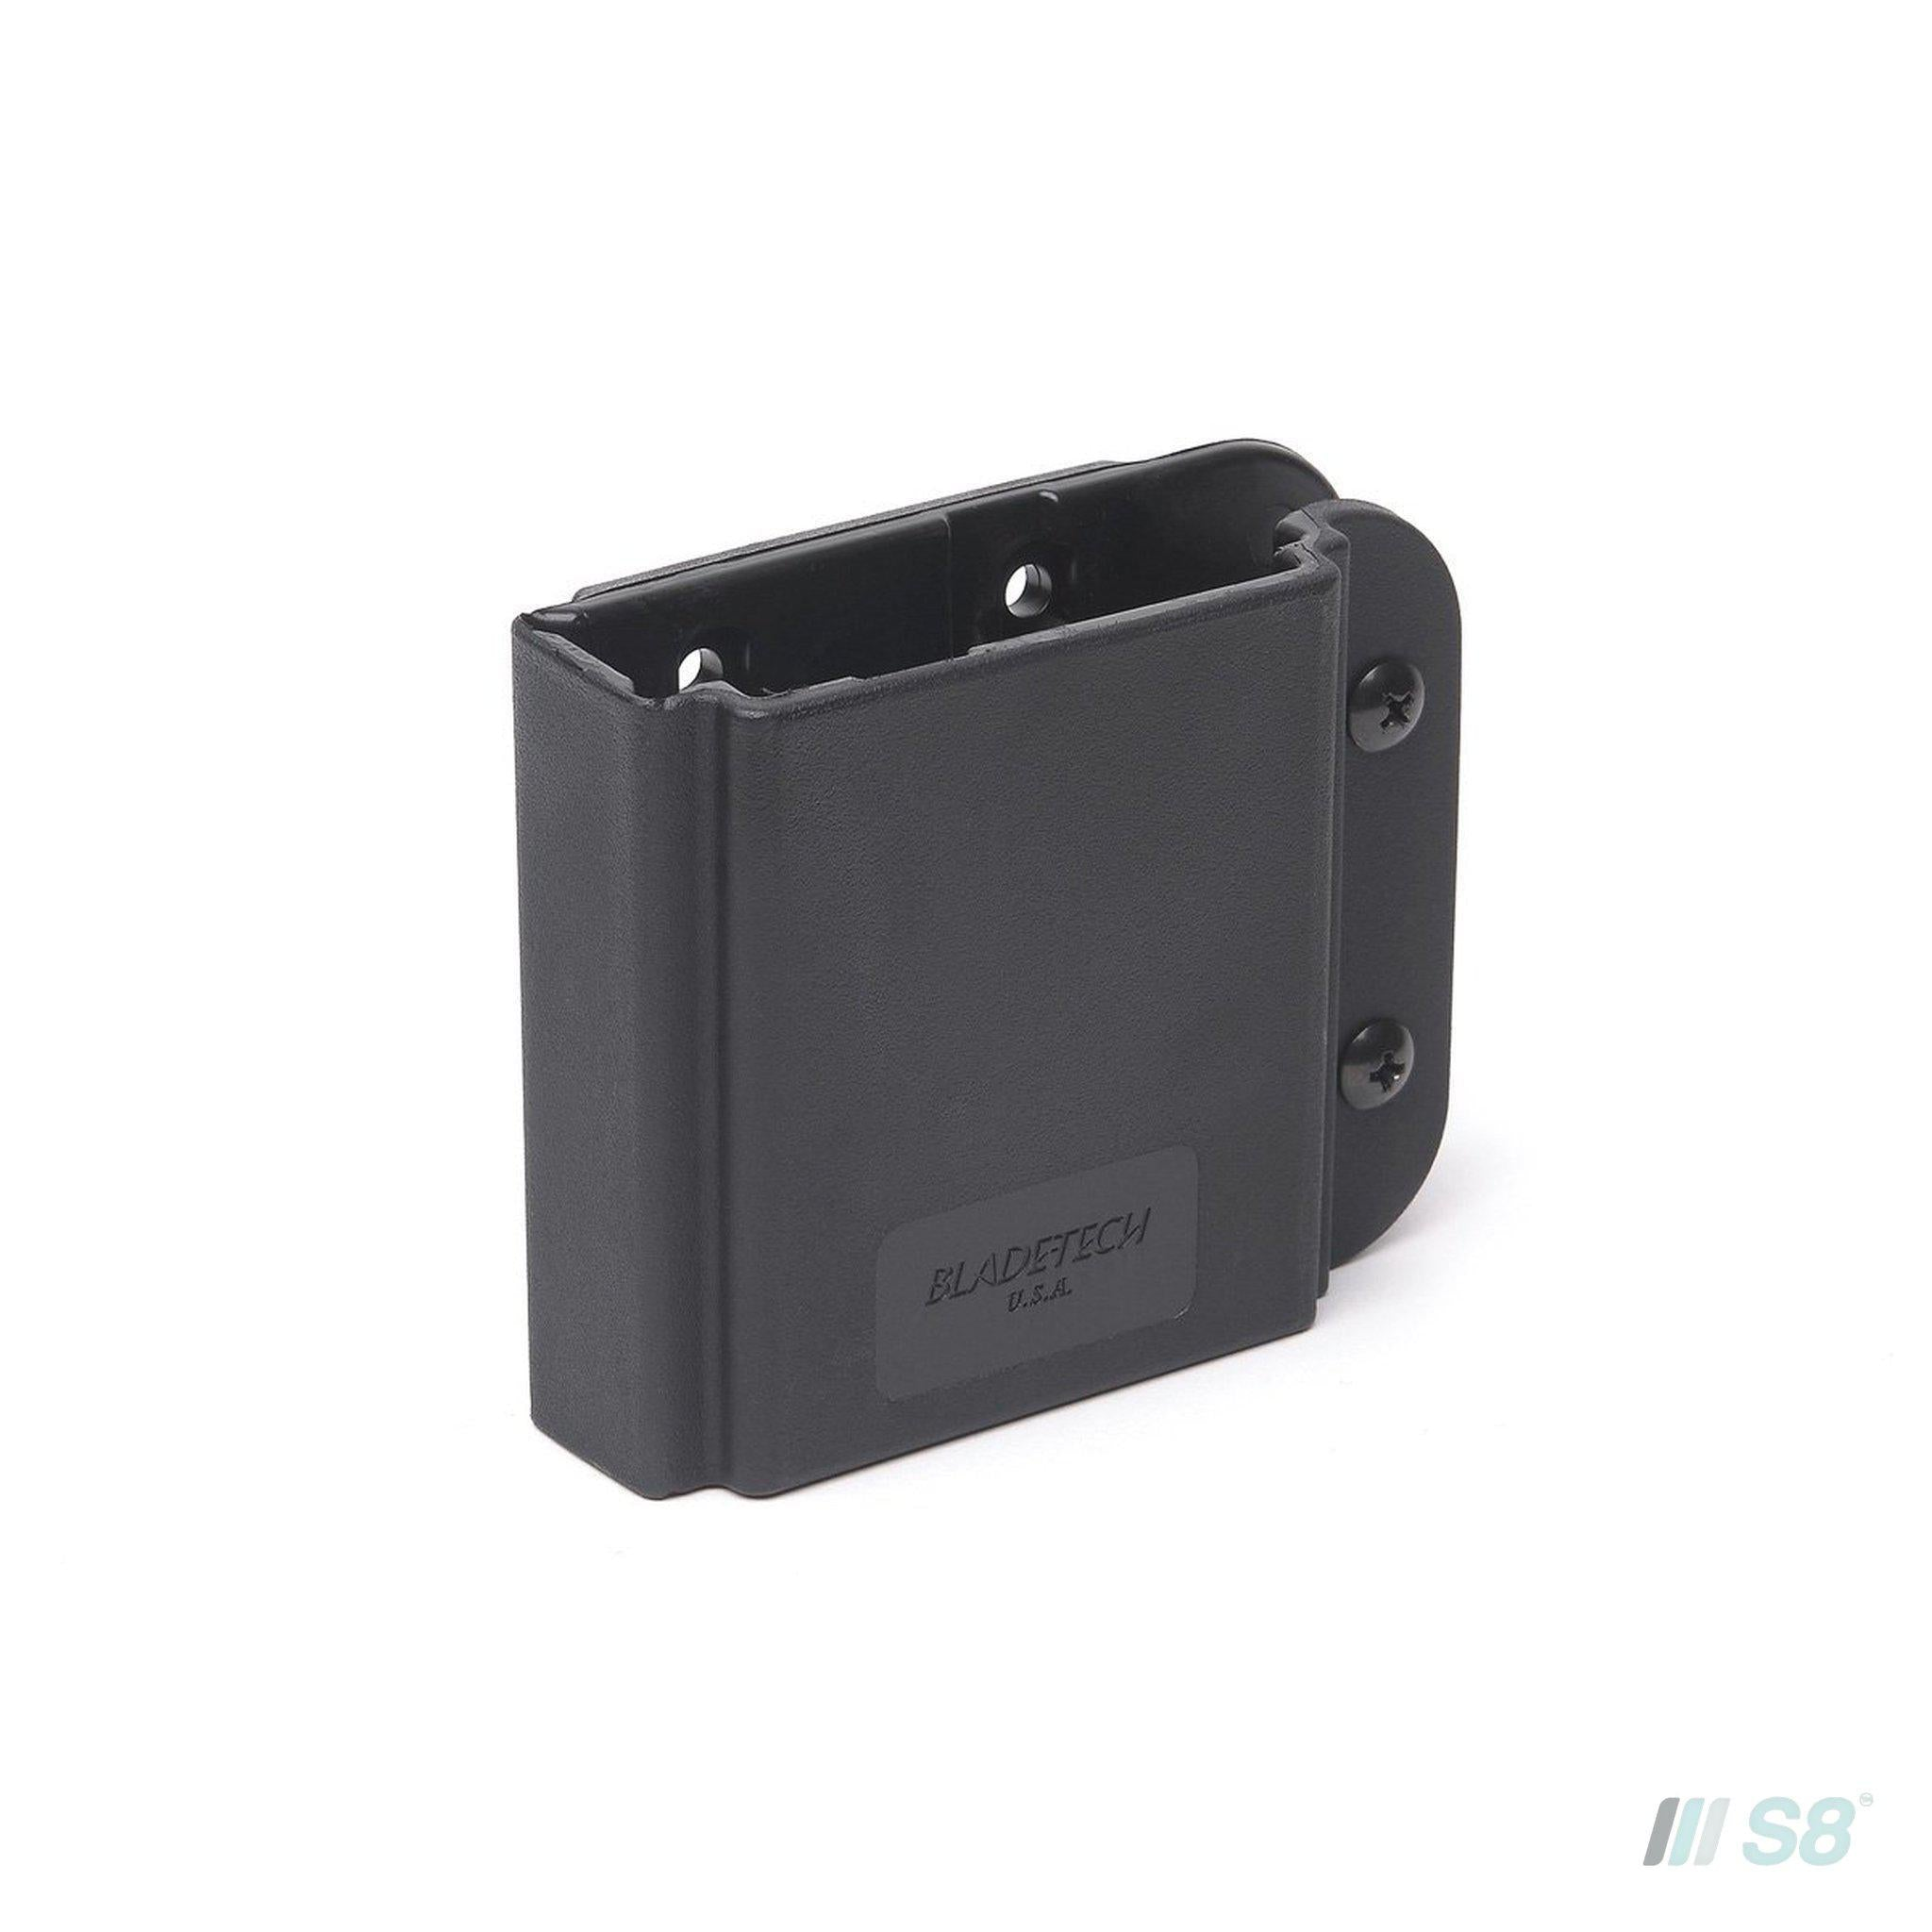 Unity Tactical CLUTCH Blade-Tech AR Mag Pouch-Unity Tactical-S8 Products Group